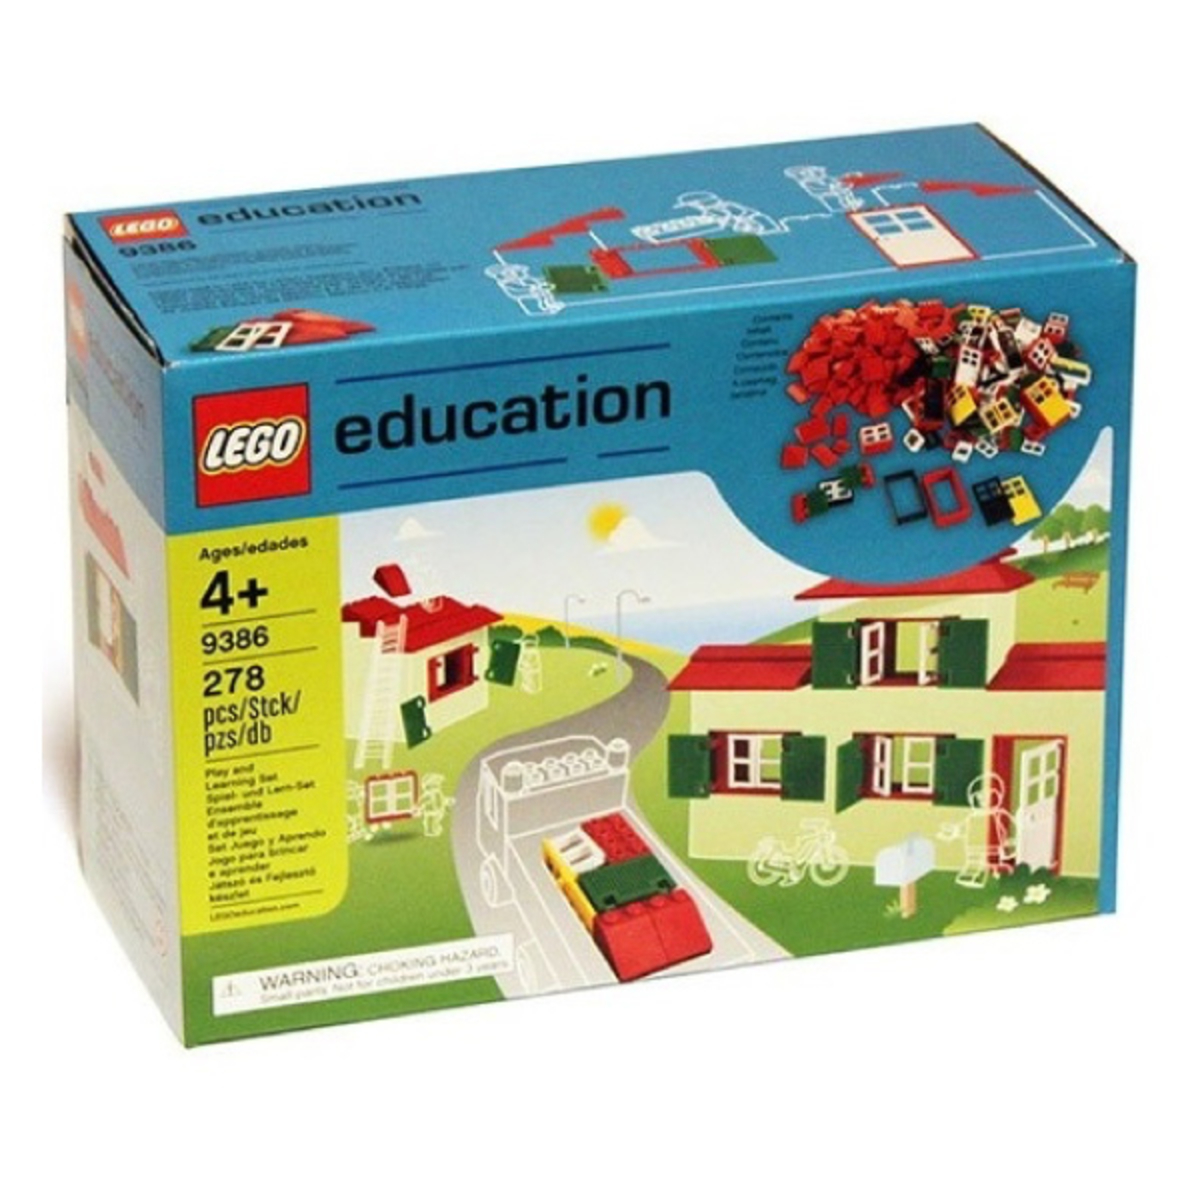 Lego Education 9386 Doors, Windows and Roof Tiles Set